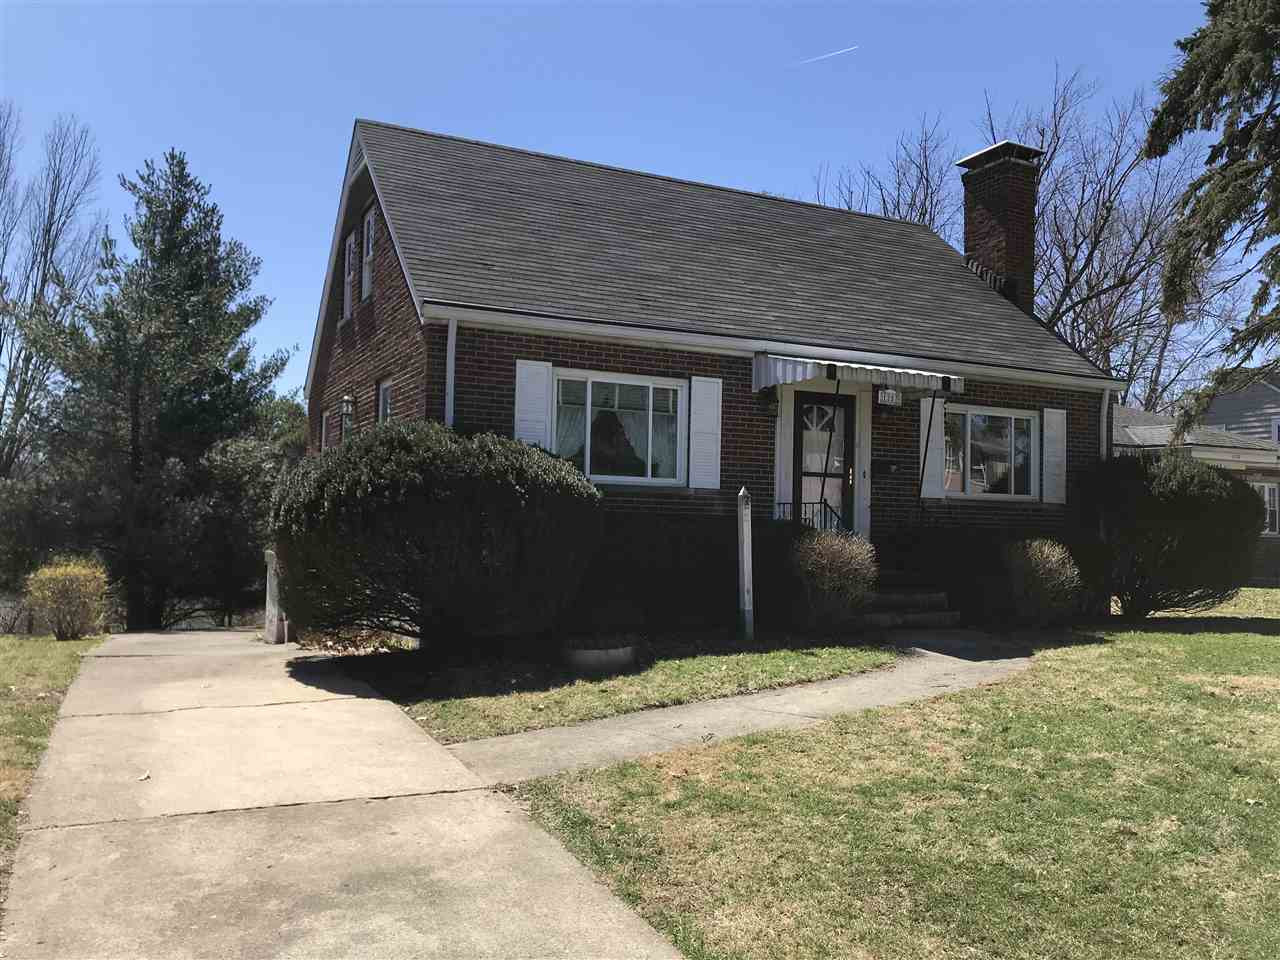 Photo 1 for 1257 Upland Ave Fort Wright, KY 41011